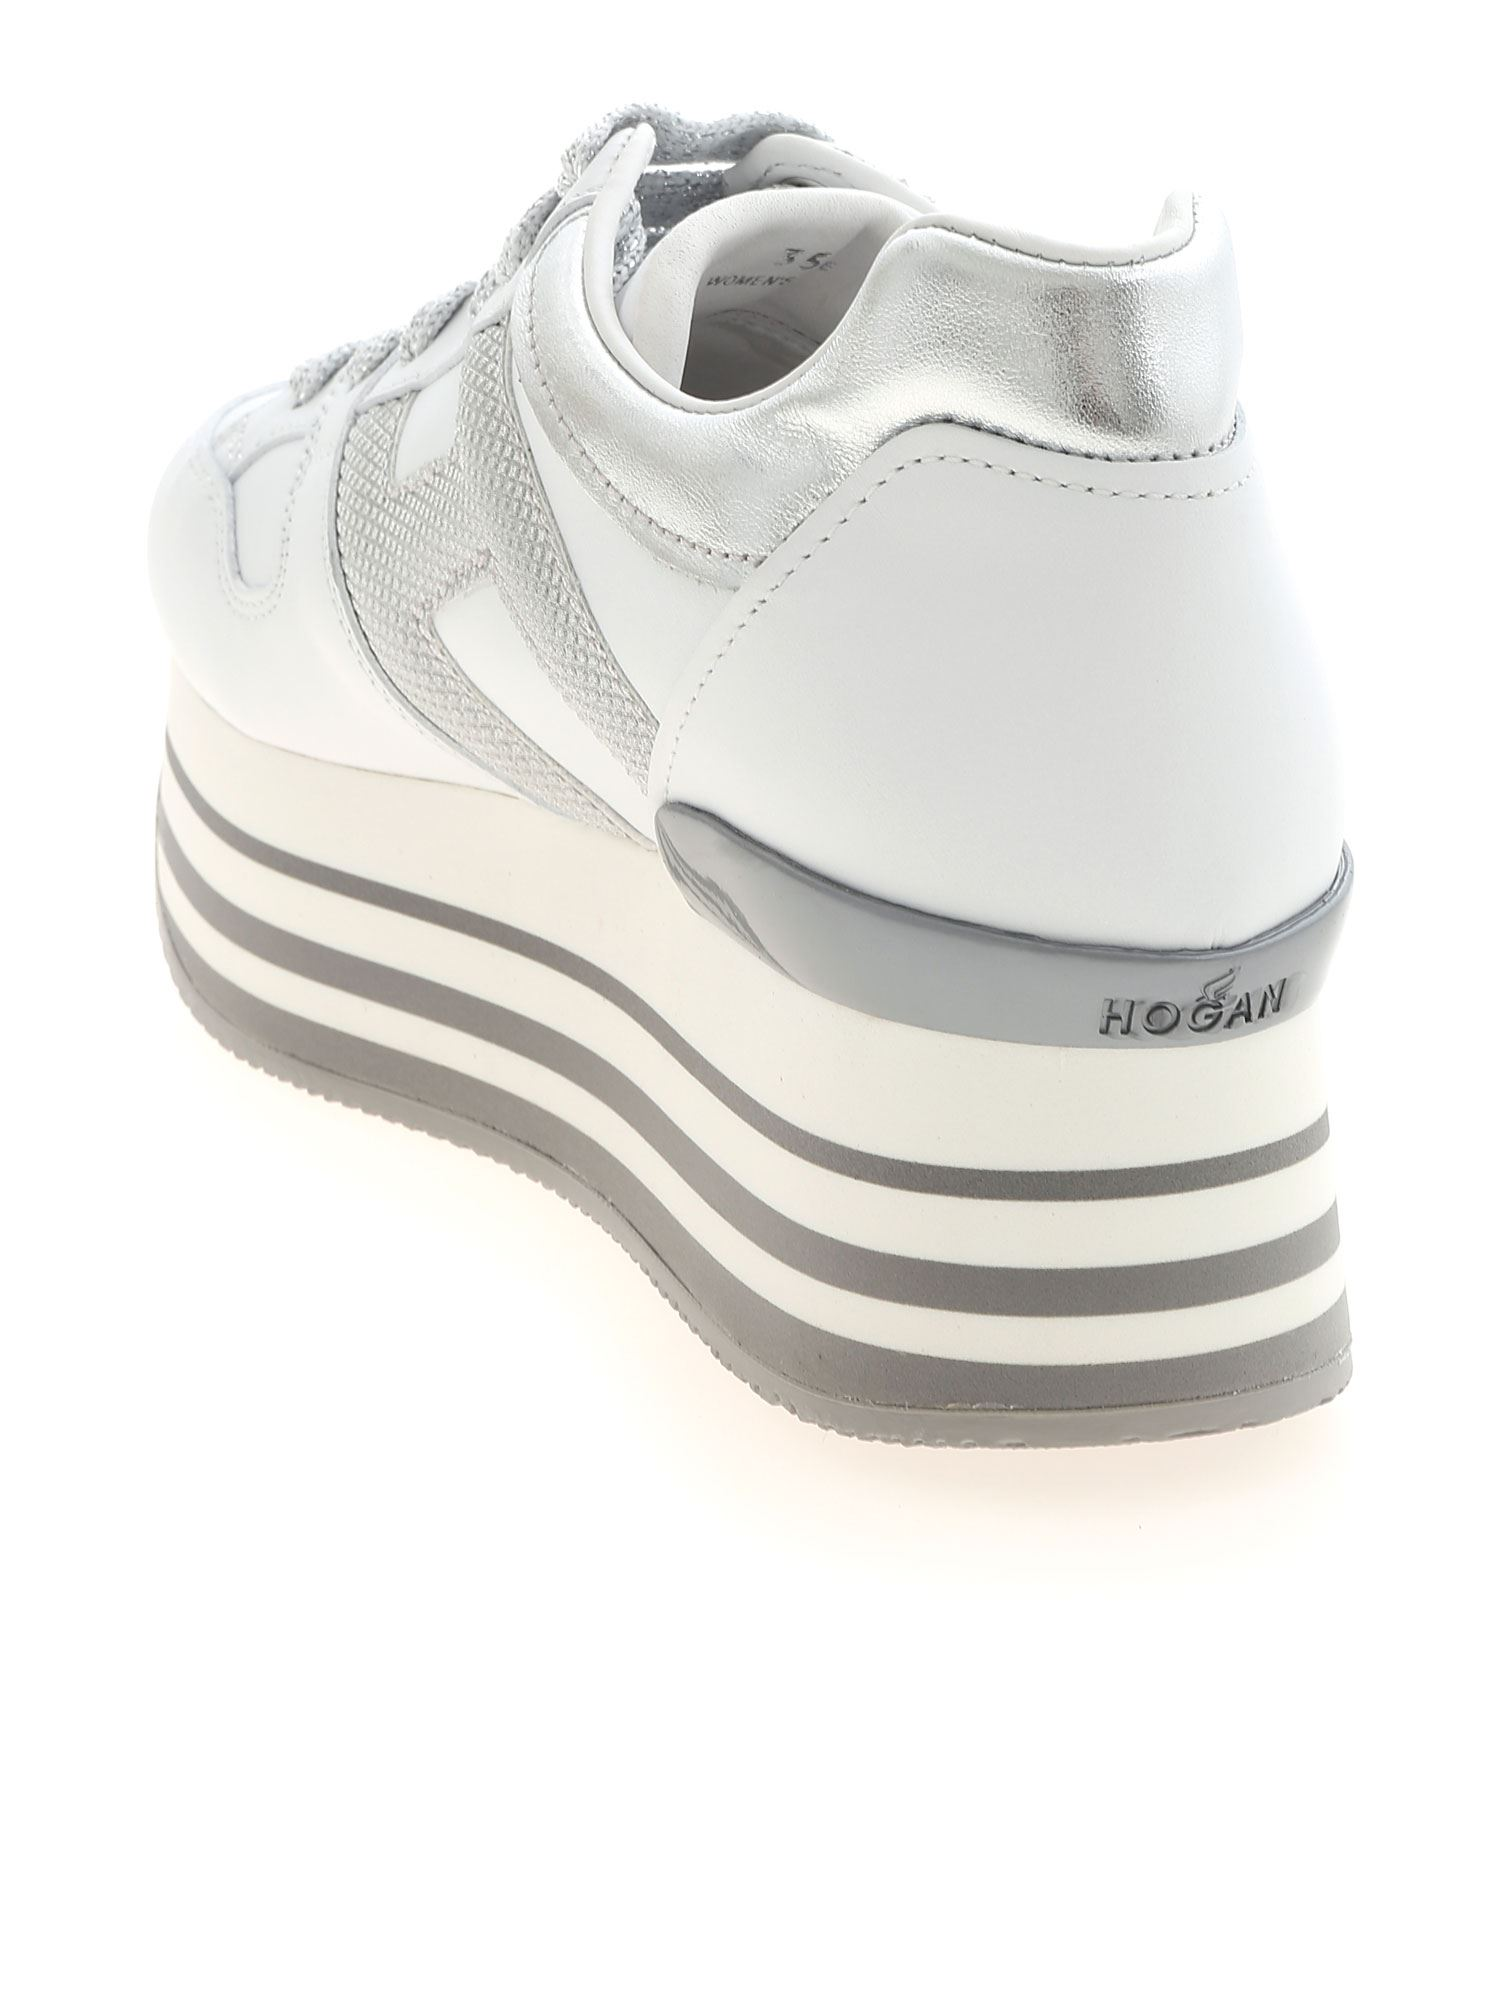 SNEAKERS H283 BIANCHE E ARGENTO HXW2830T548P940351